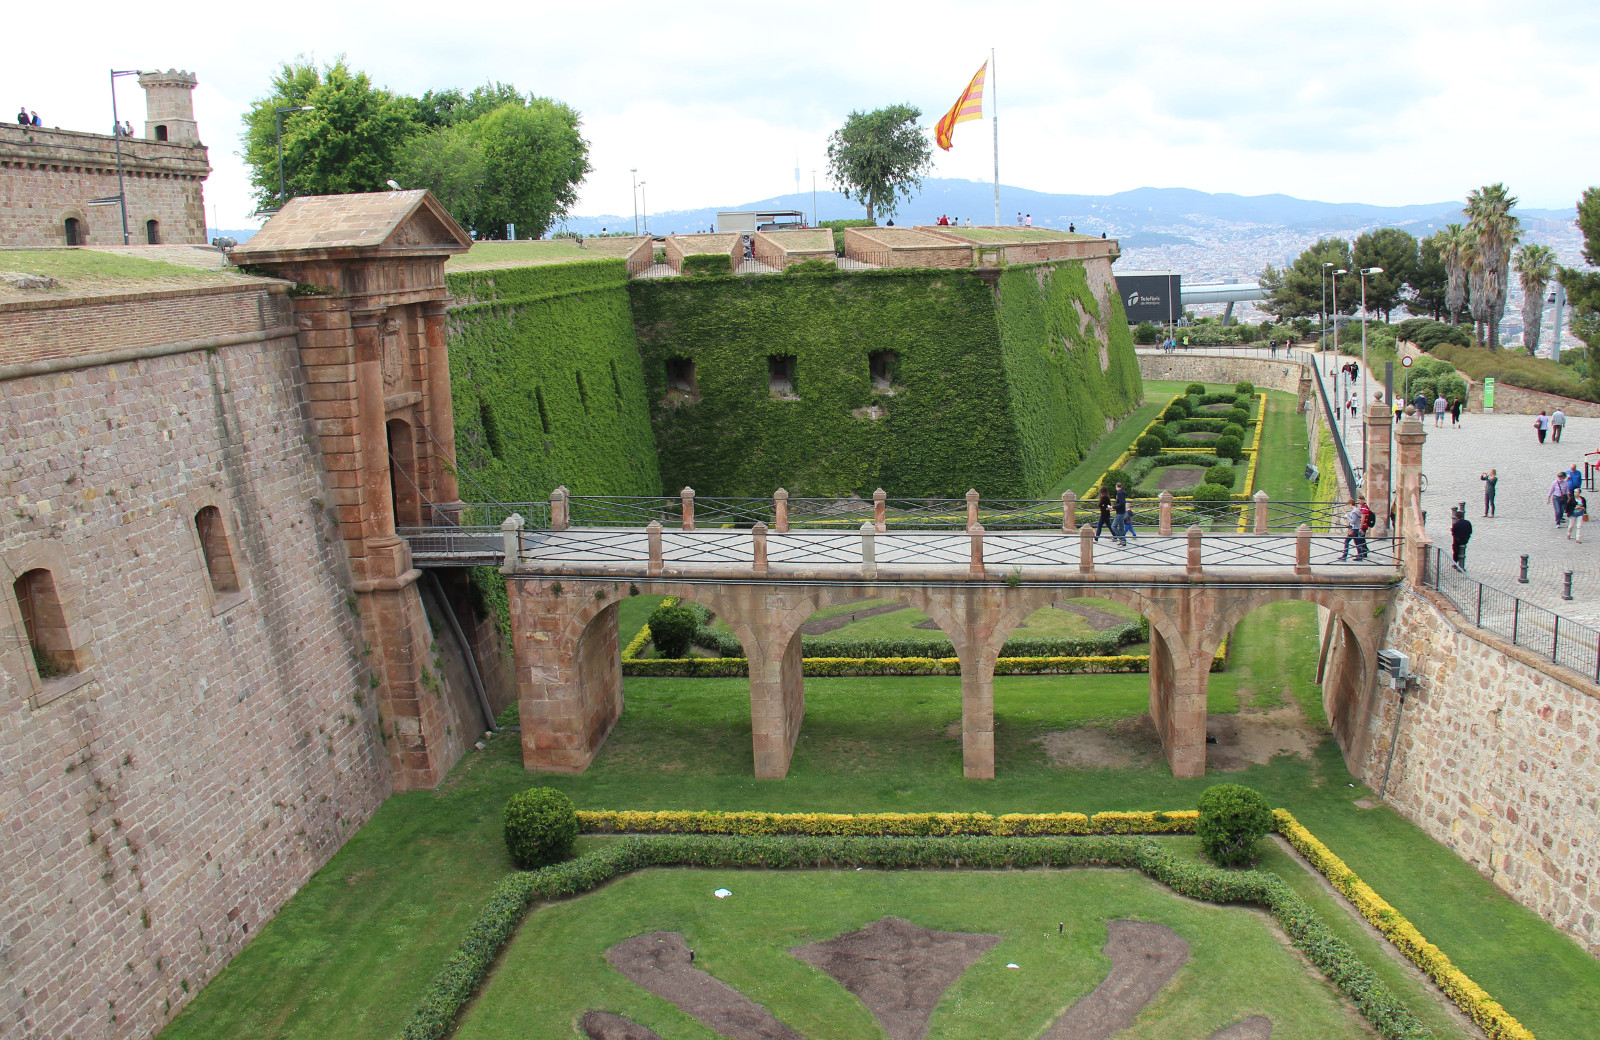 Main entrance to the Castle of Montjuic, Barcelona